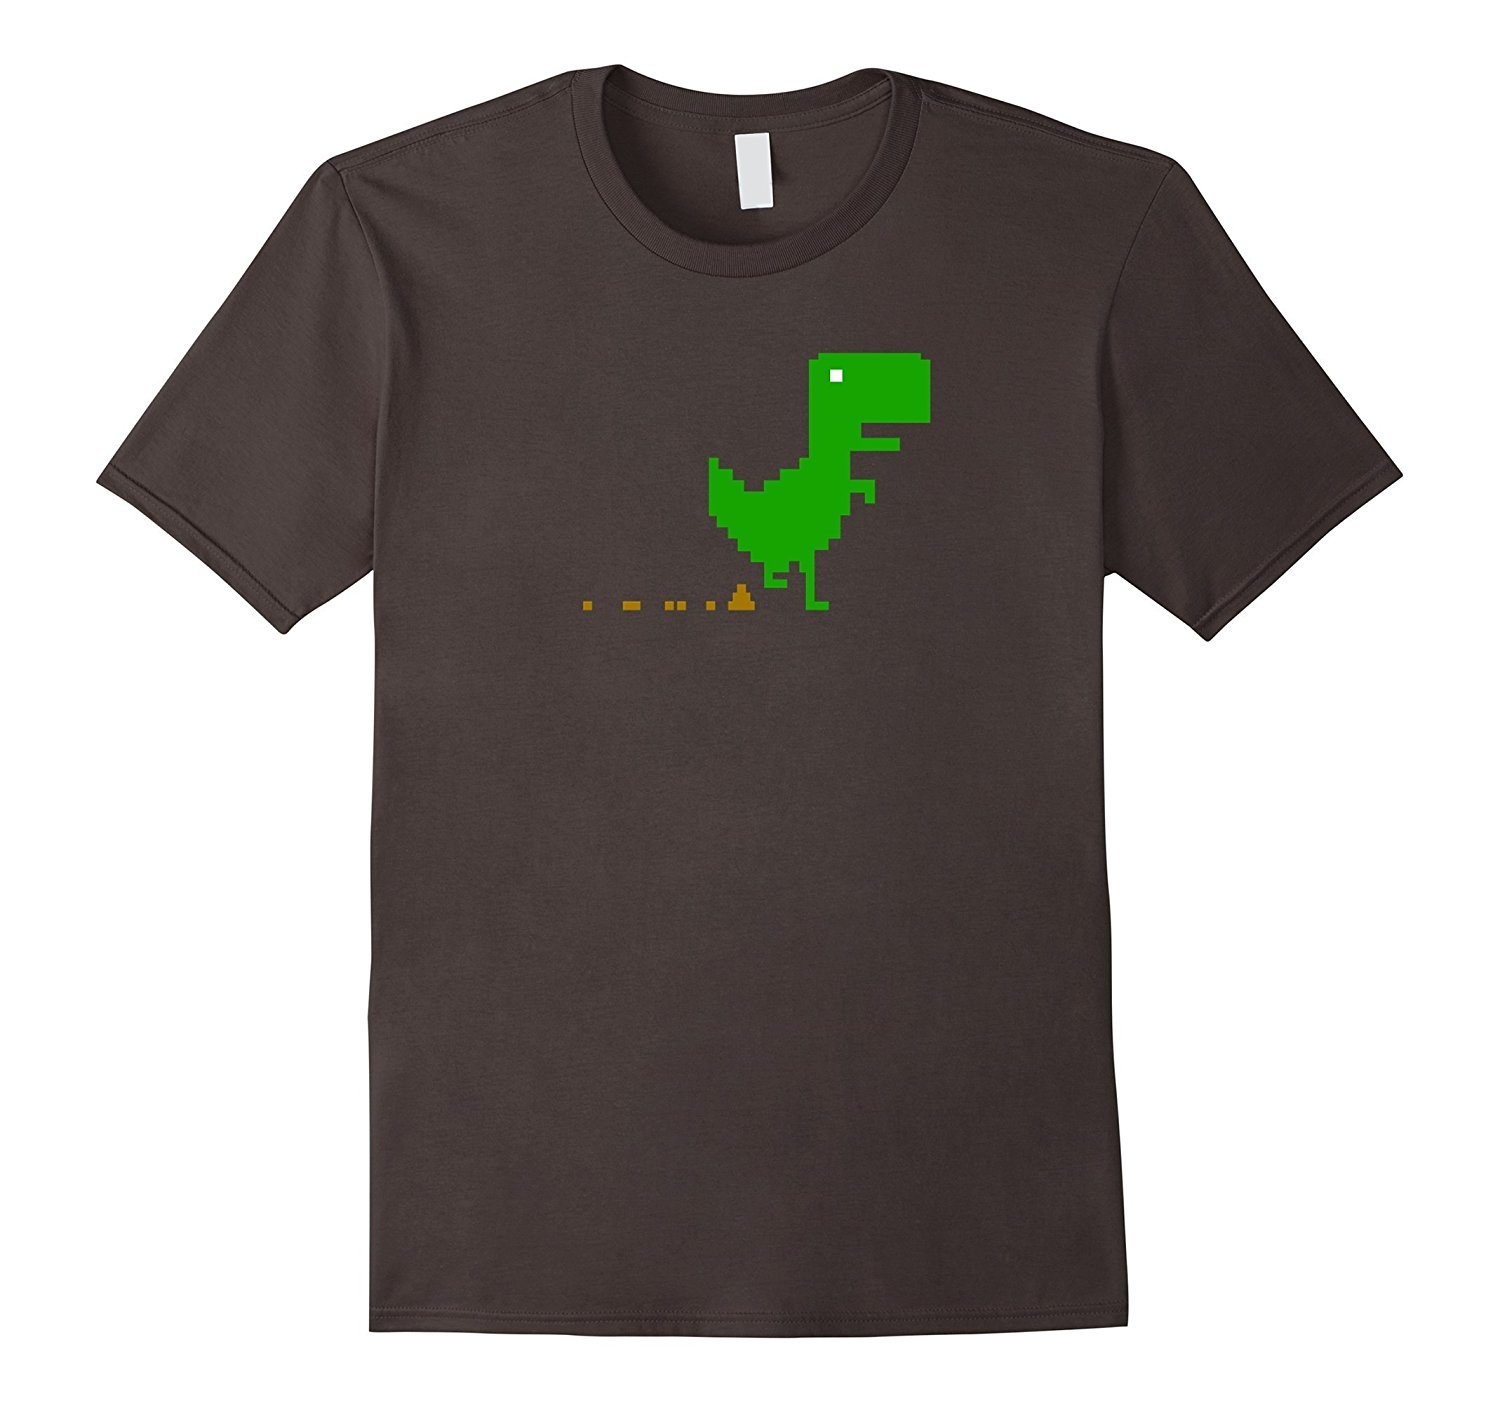 T-Rex Dinosaur Poops funny humor pixel graphic